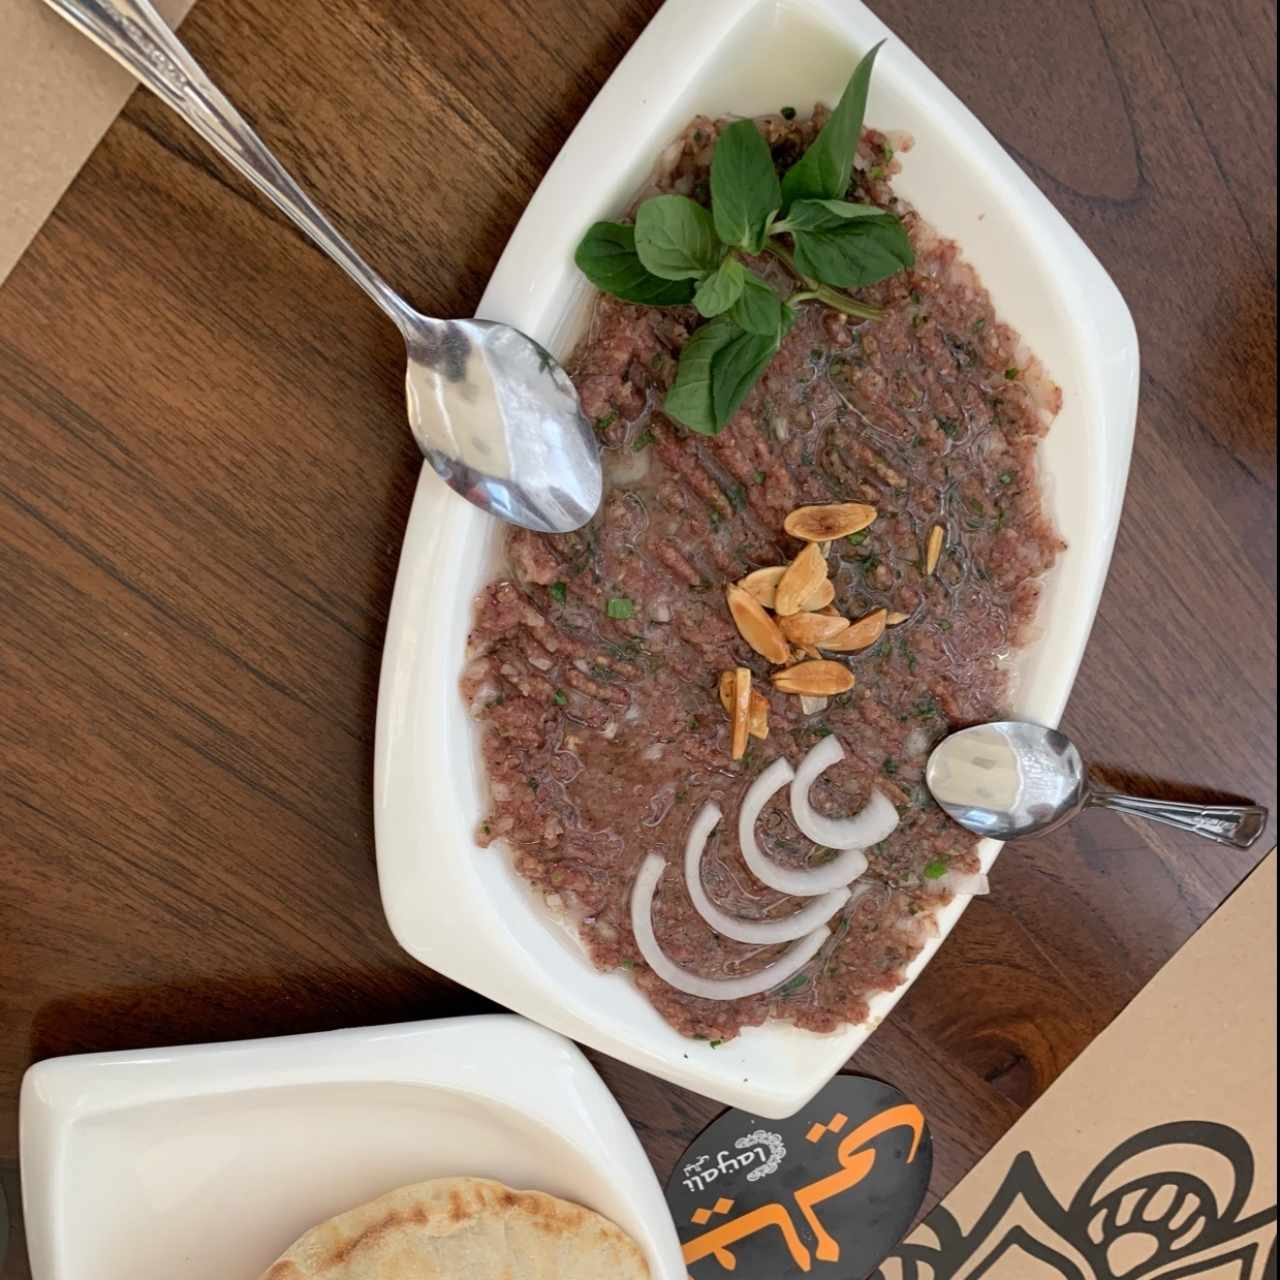 Appetizers - Middle East Carpaccio